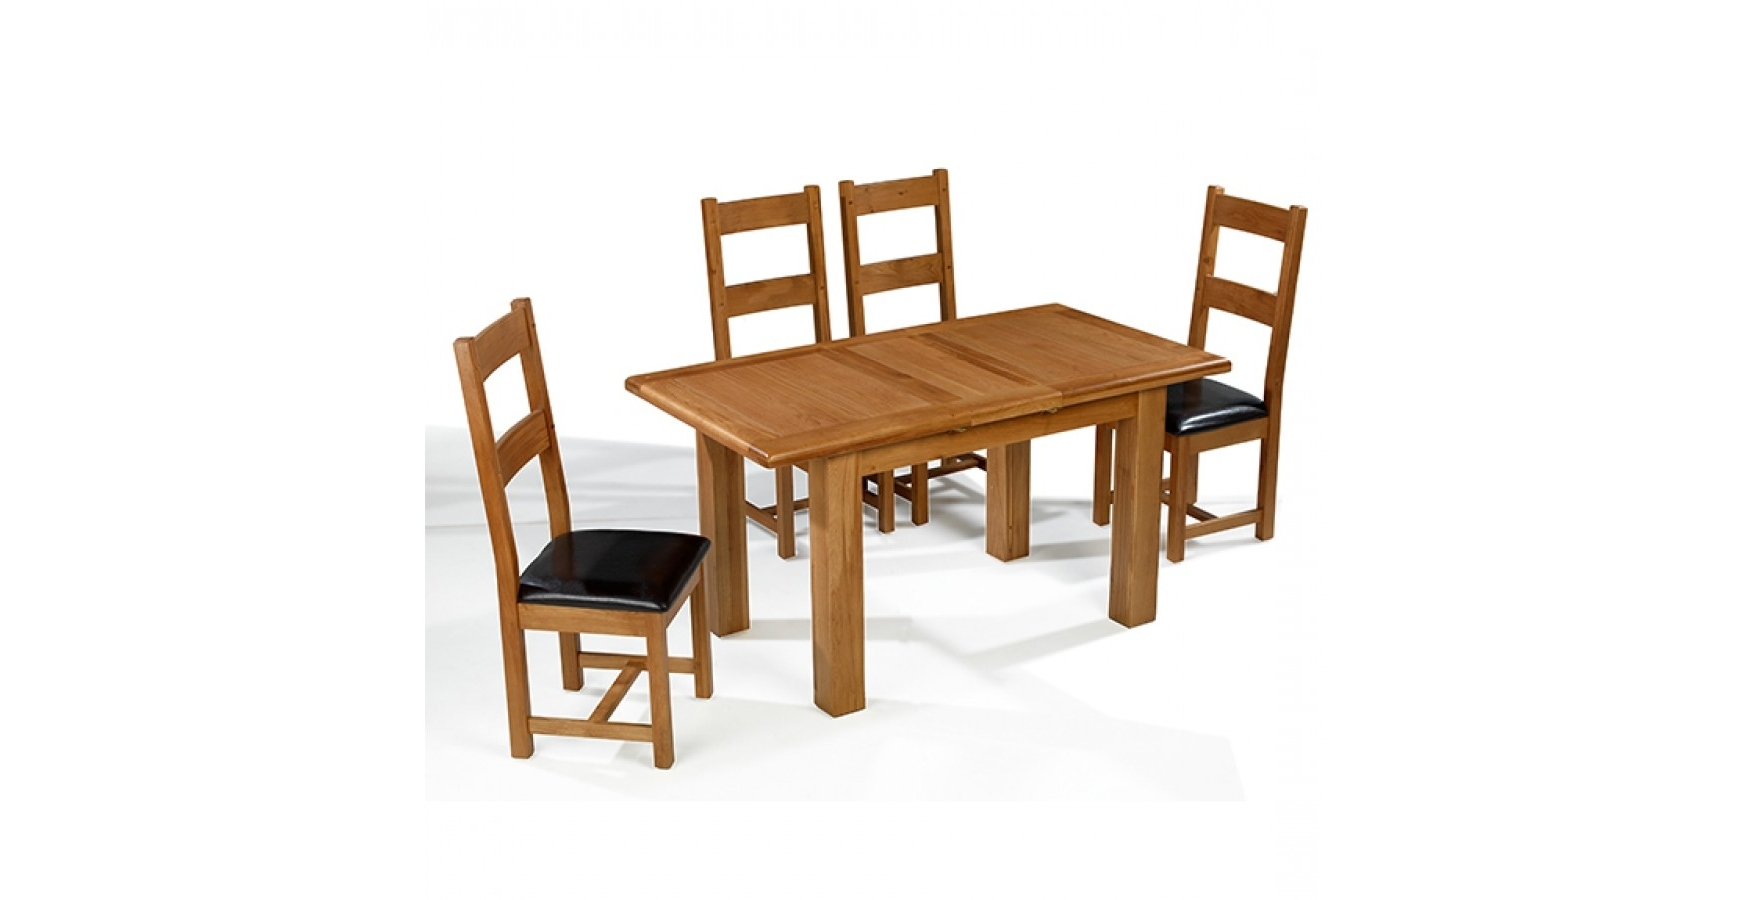 Oak Extending Dining Tables And 4 Chairs Regarding Most Recent Emsworth Oak 132 198 Cm Extending Dining Table And 4 Chairs (View 6 of 25)